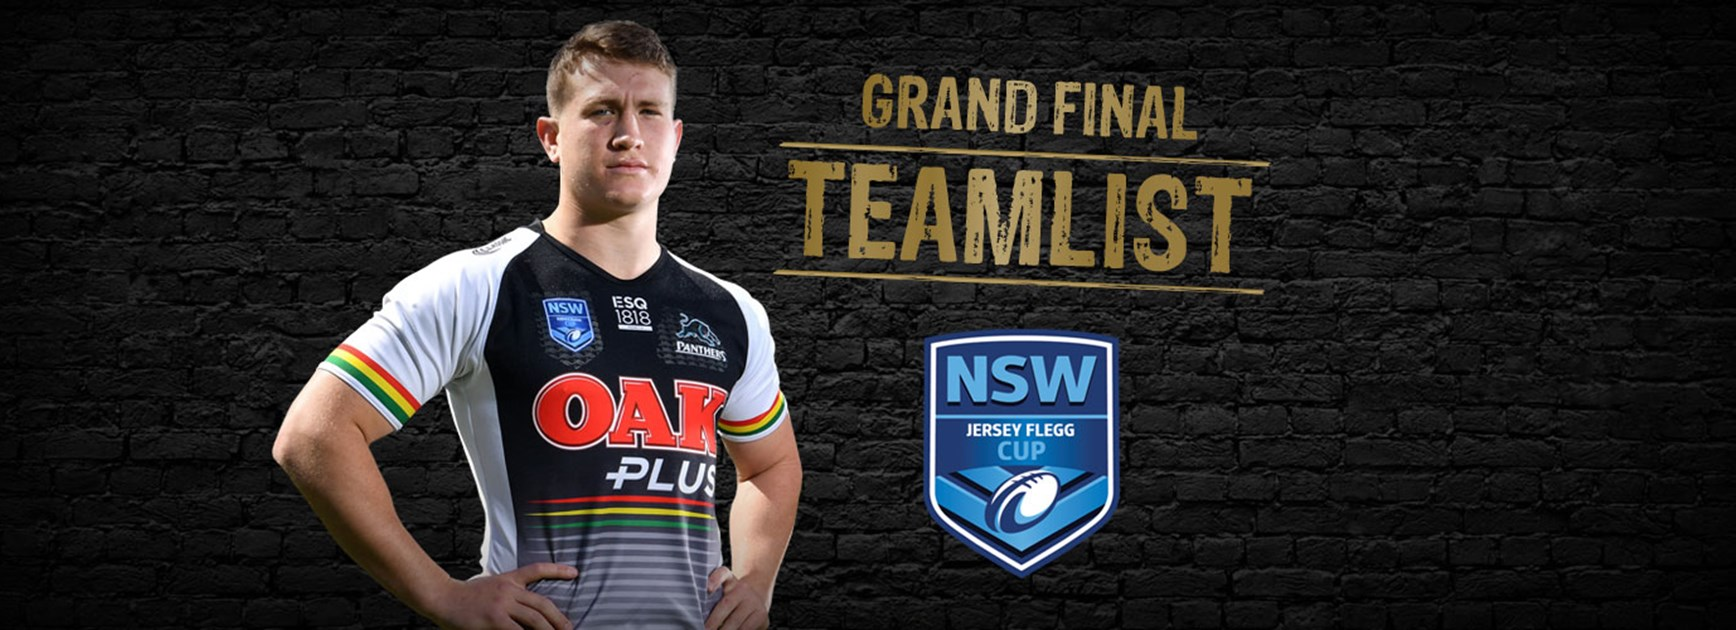 Jersey Flegg Teamlist: Grand Final